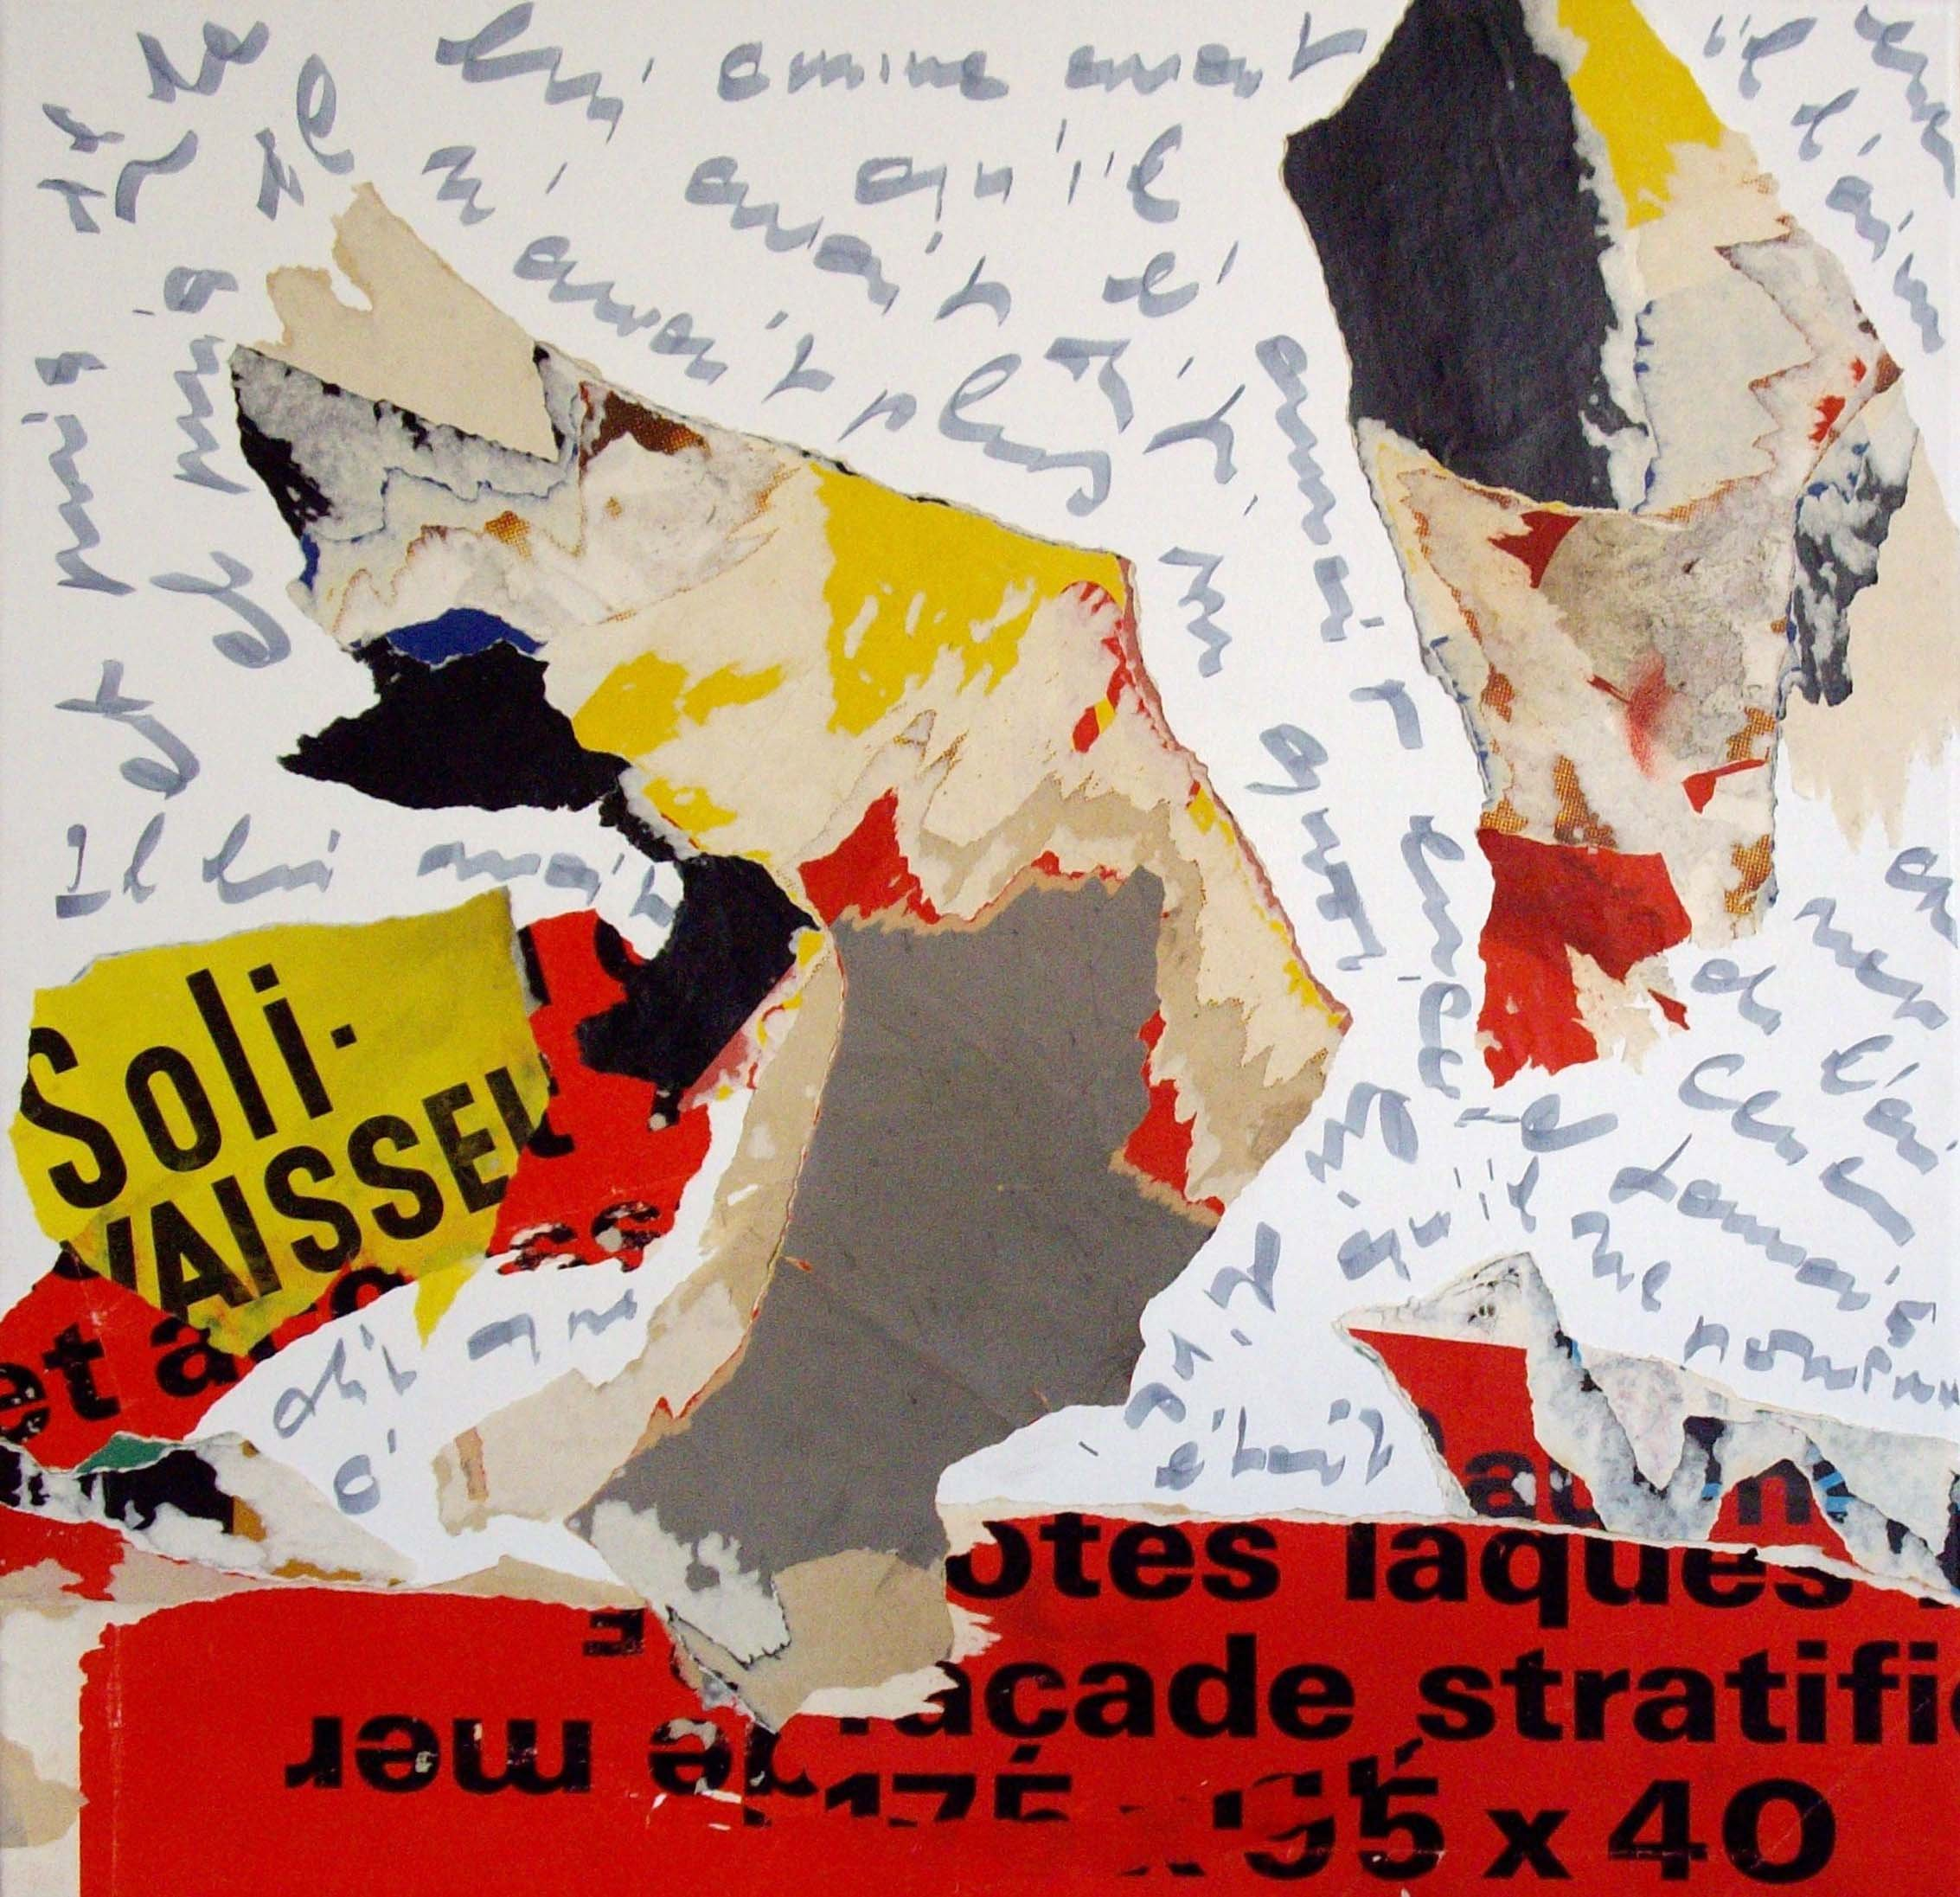 Les Sablons II: L'envol - 60 x 60 cm - March 2008 - Torn posters, calligraphy on canvas